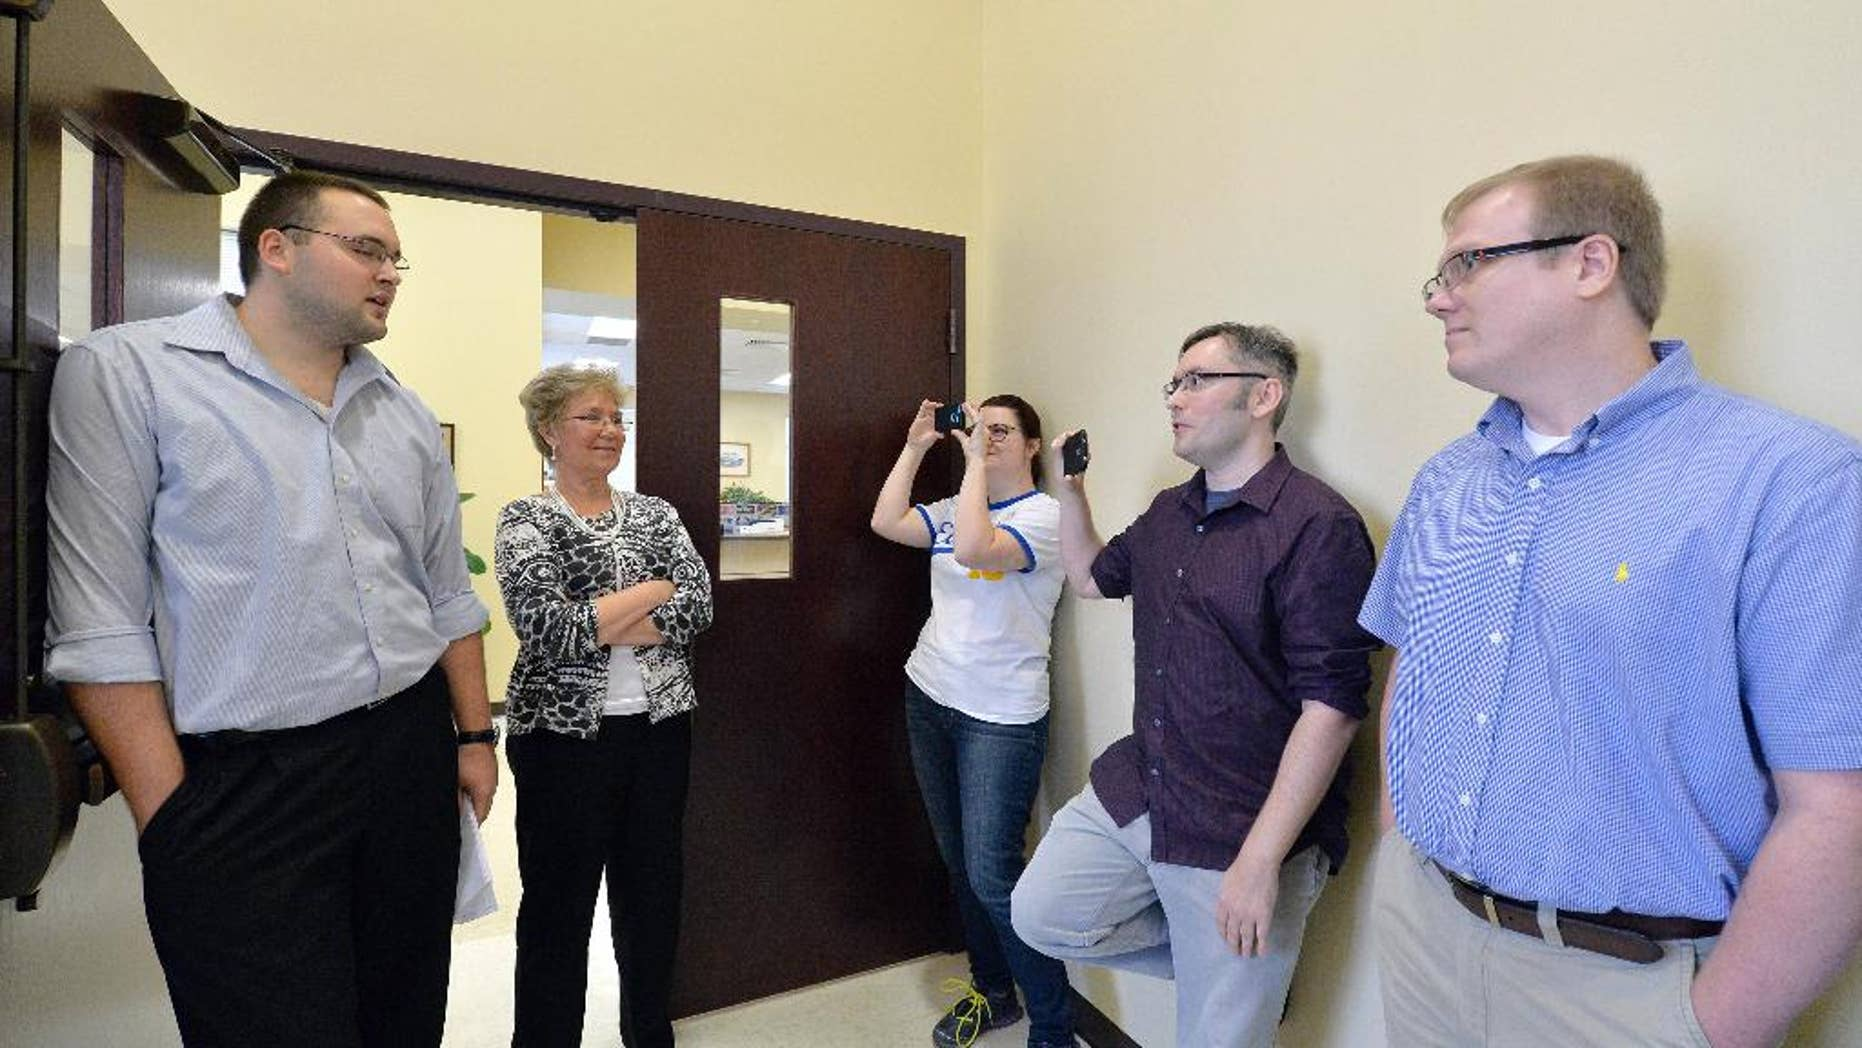 Rowan County clerks Nathan Davis, left, and Roberta Earley, second left, inform David Ermold, right, and David Moore, second from right, that the county clerk's office will not be issuing marriage licenses, in defiance of an order from a federal judge, in Morehead, Ky., Thursday, Aug. 13, 2015. Rowan County Clerk Kim Davis has already filed a notice of appeal and plans to request a stay on the ruling. (AP Photo/Timothy D. Easley)